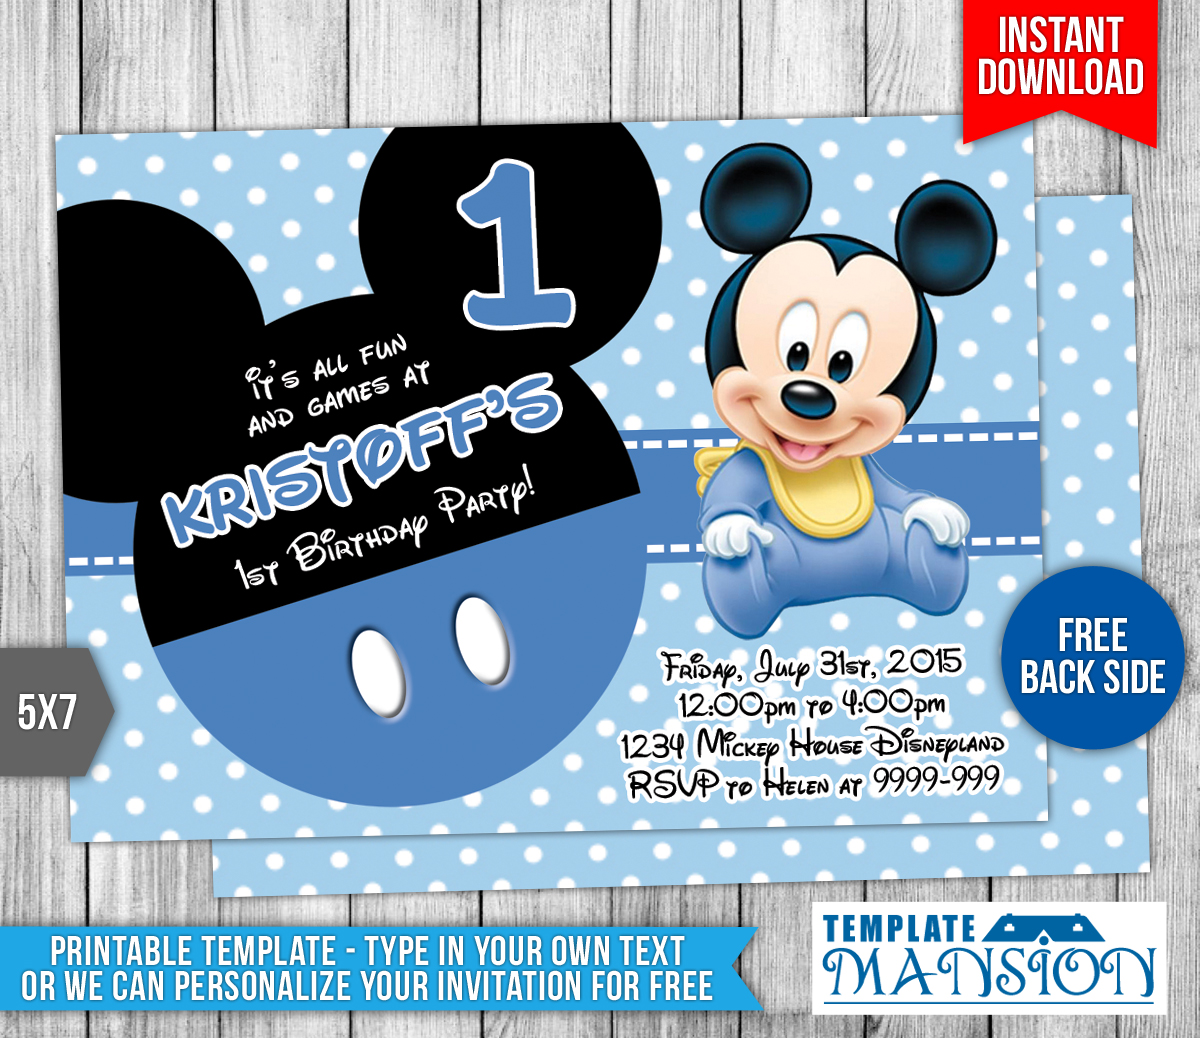 free printable mickey mouse invitations birthday - Etame.mibawa.co